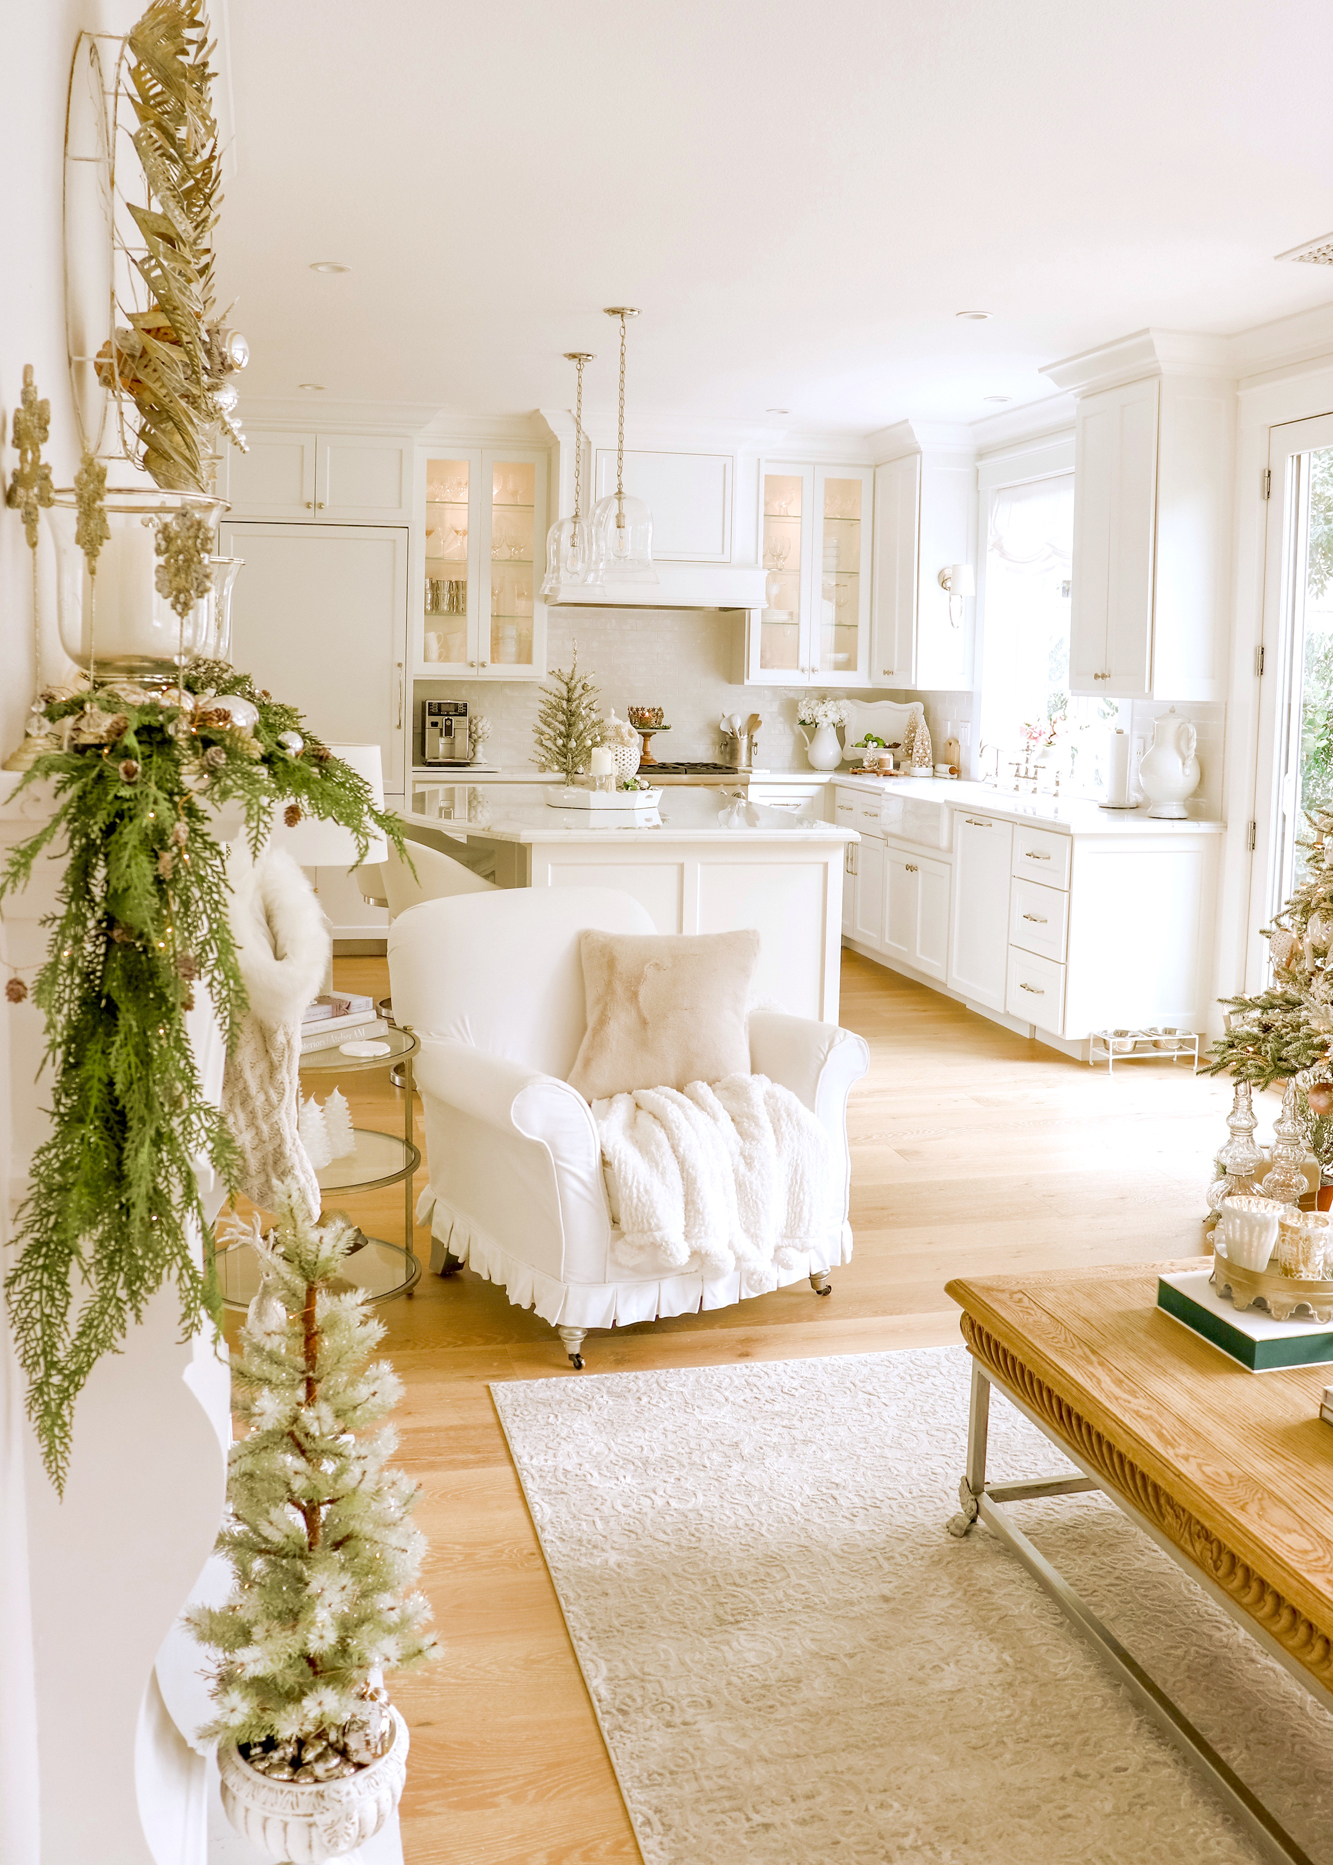 Holiday Decor Links & Sources - You all loved my Christmas decor from last year.. all of the hottest items are back in stock! Many on sale. Linked all.